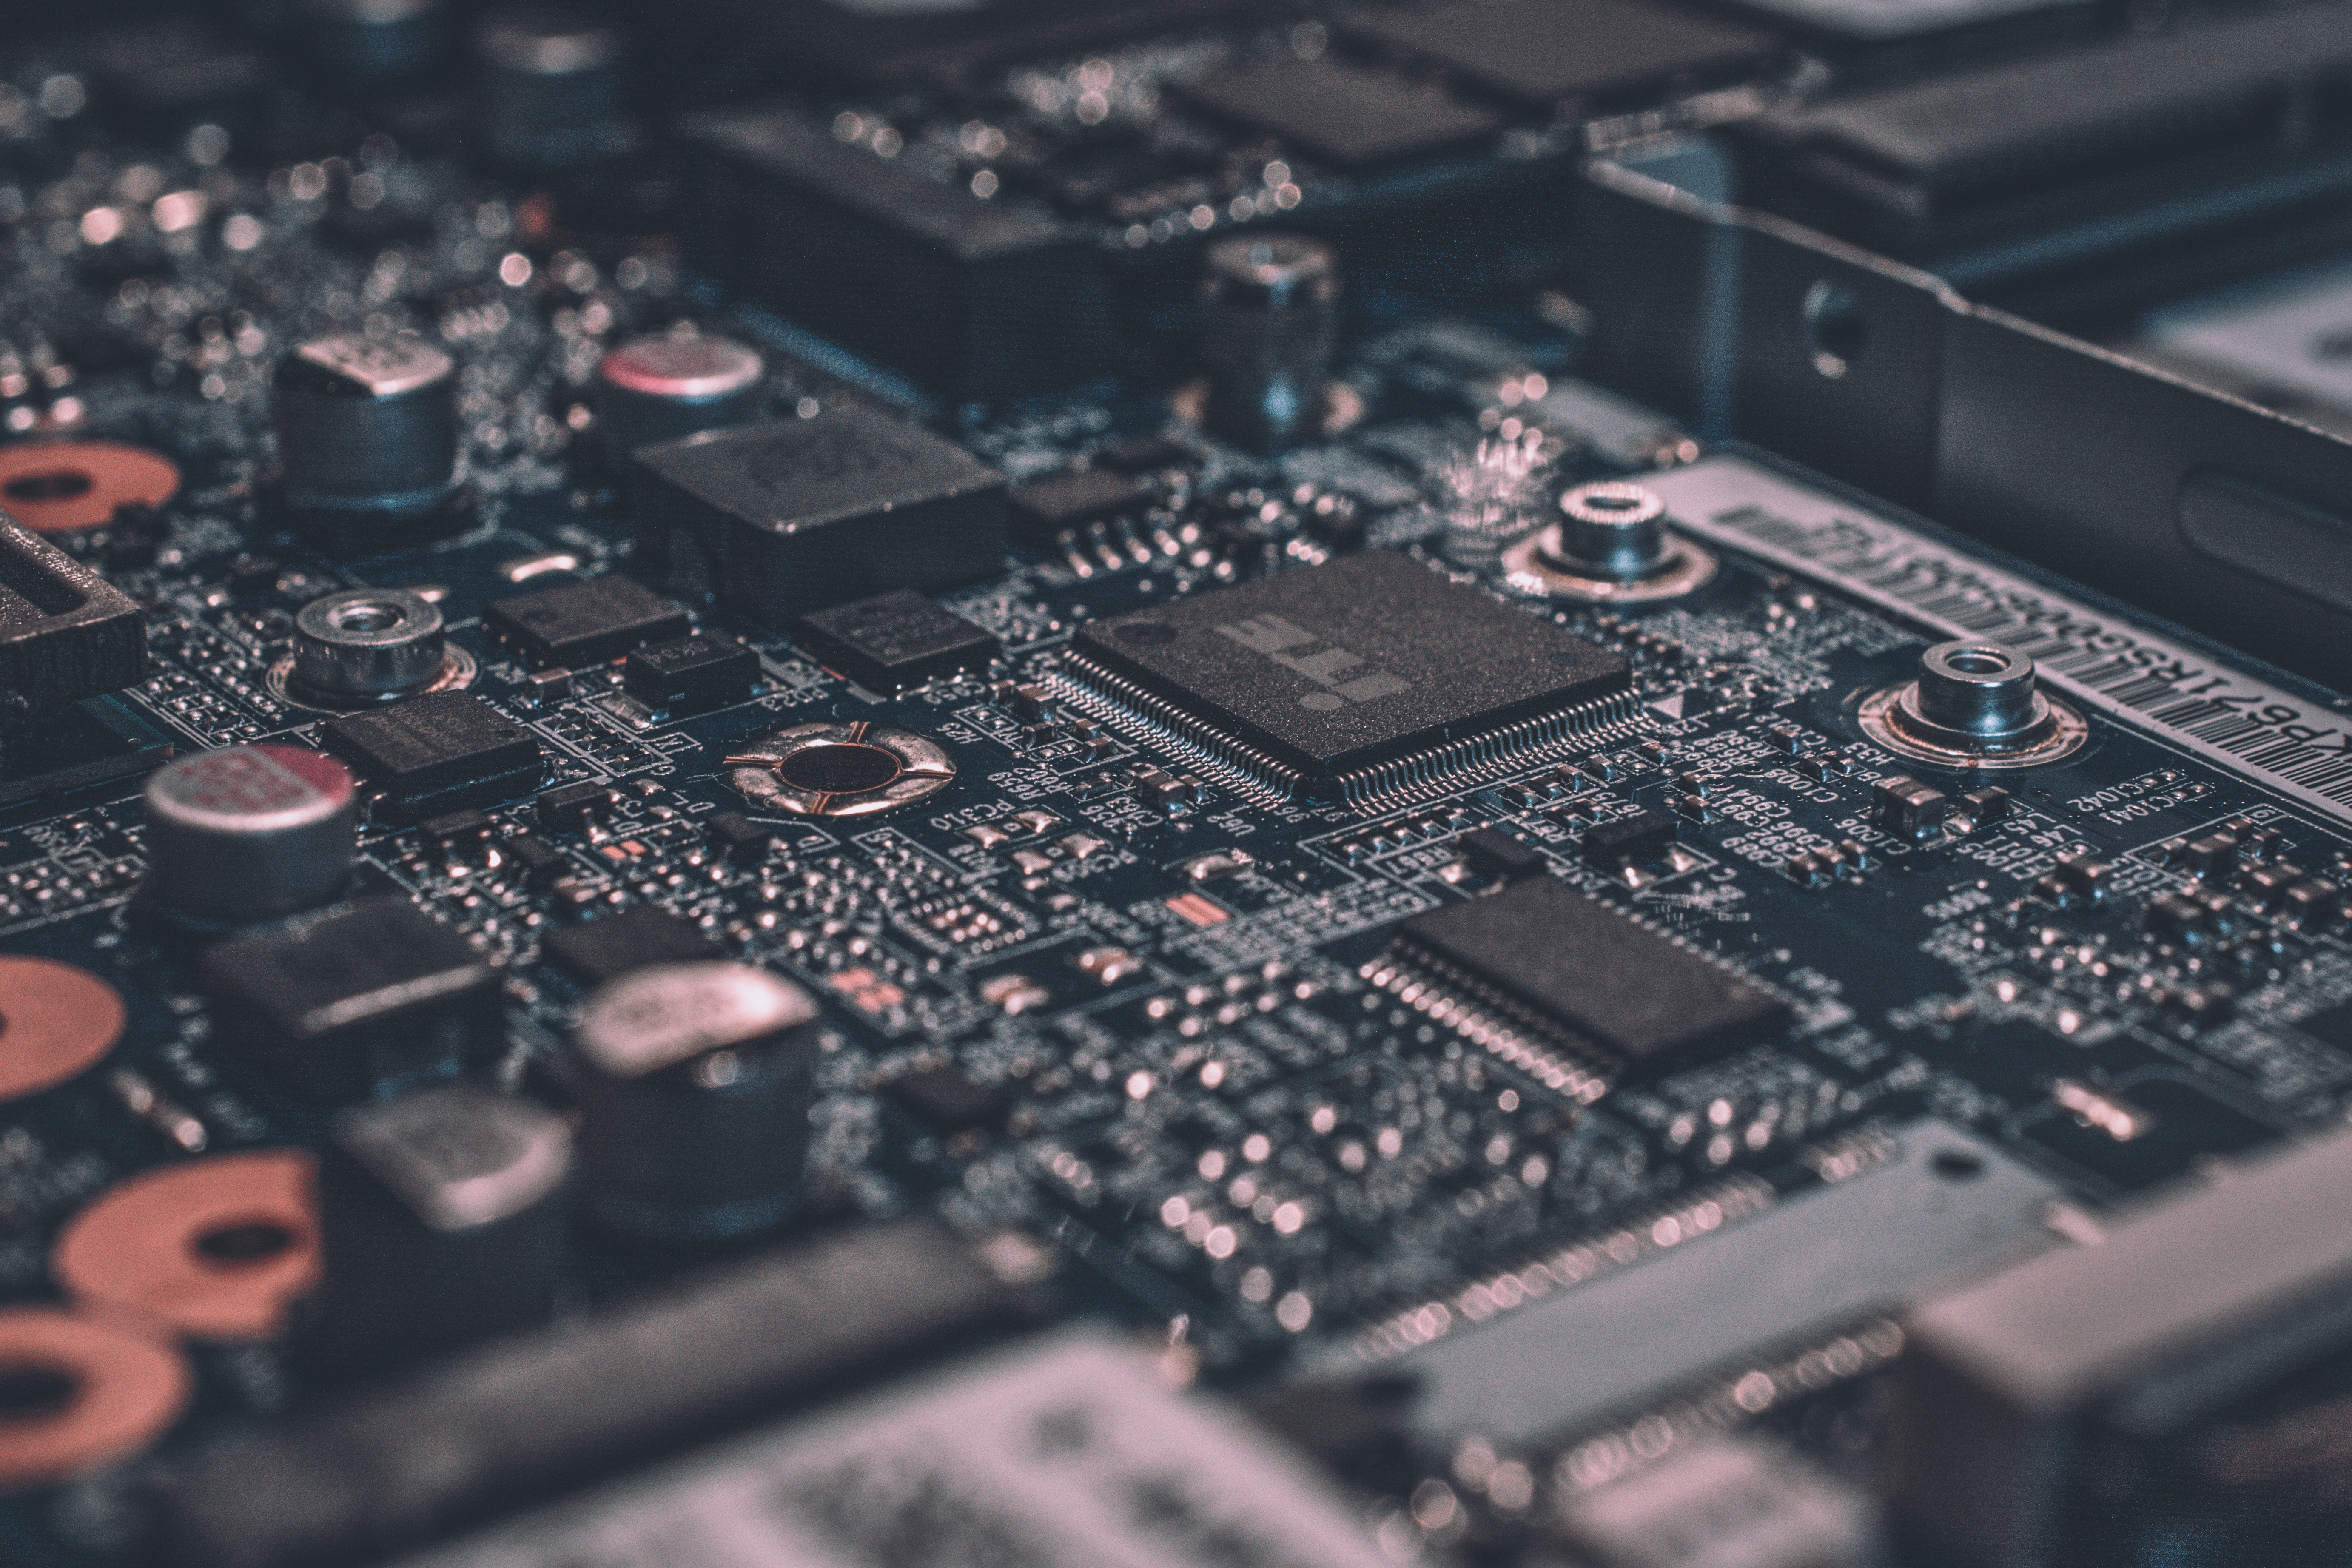 Internet of Things (IoT) Professional Services Market to Eyewitness Massive Growth by 2028: Accenture, Atos, Capgemini, Cognizant Technology Solutions - The Manomet Current